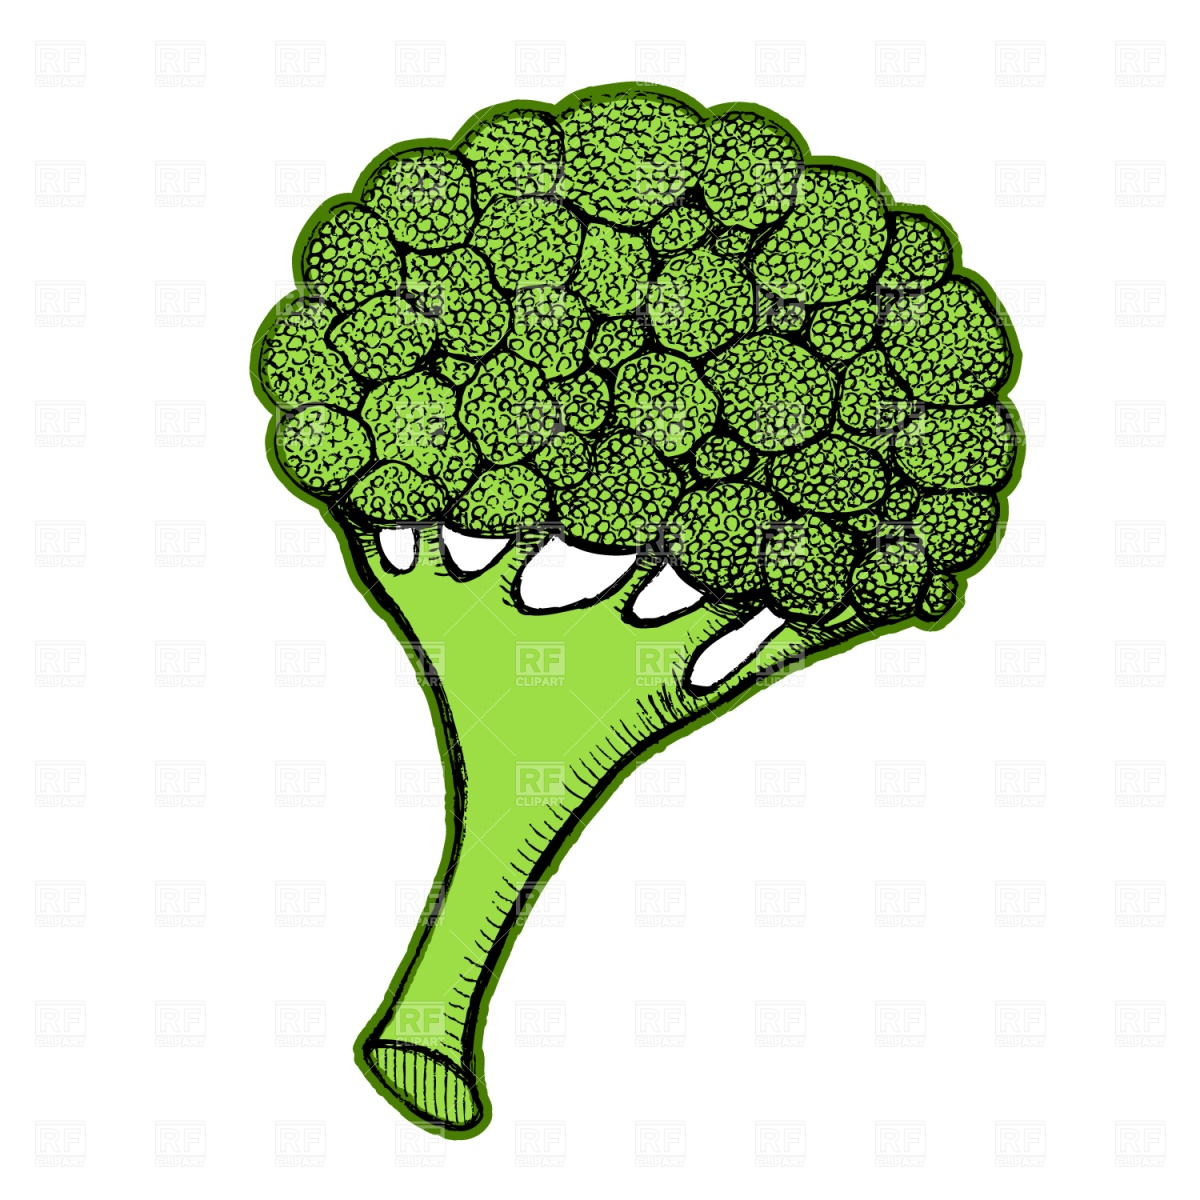 1200x1200 Broccoli Vector Image Vector Artwork Of Food And Beverages